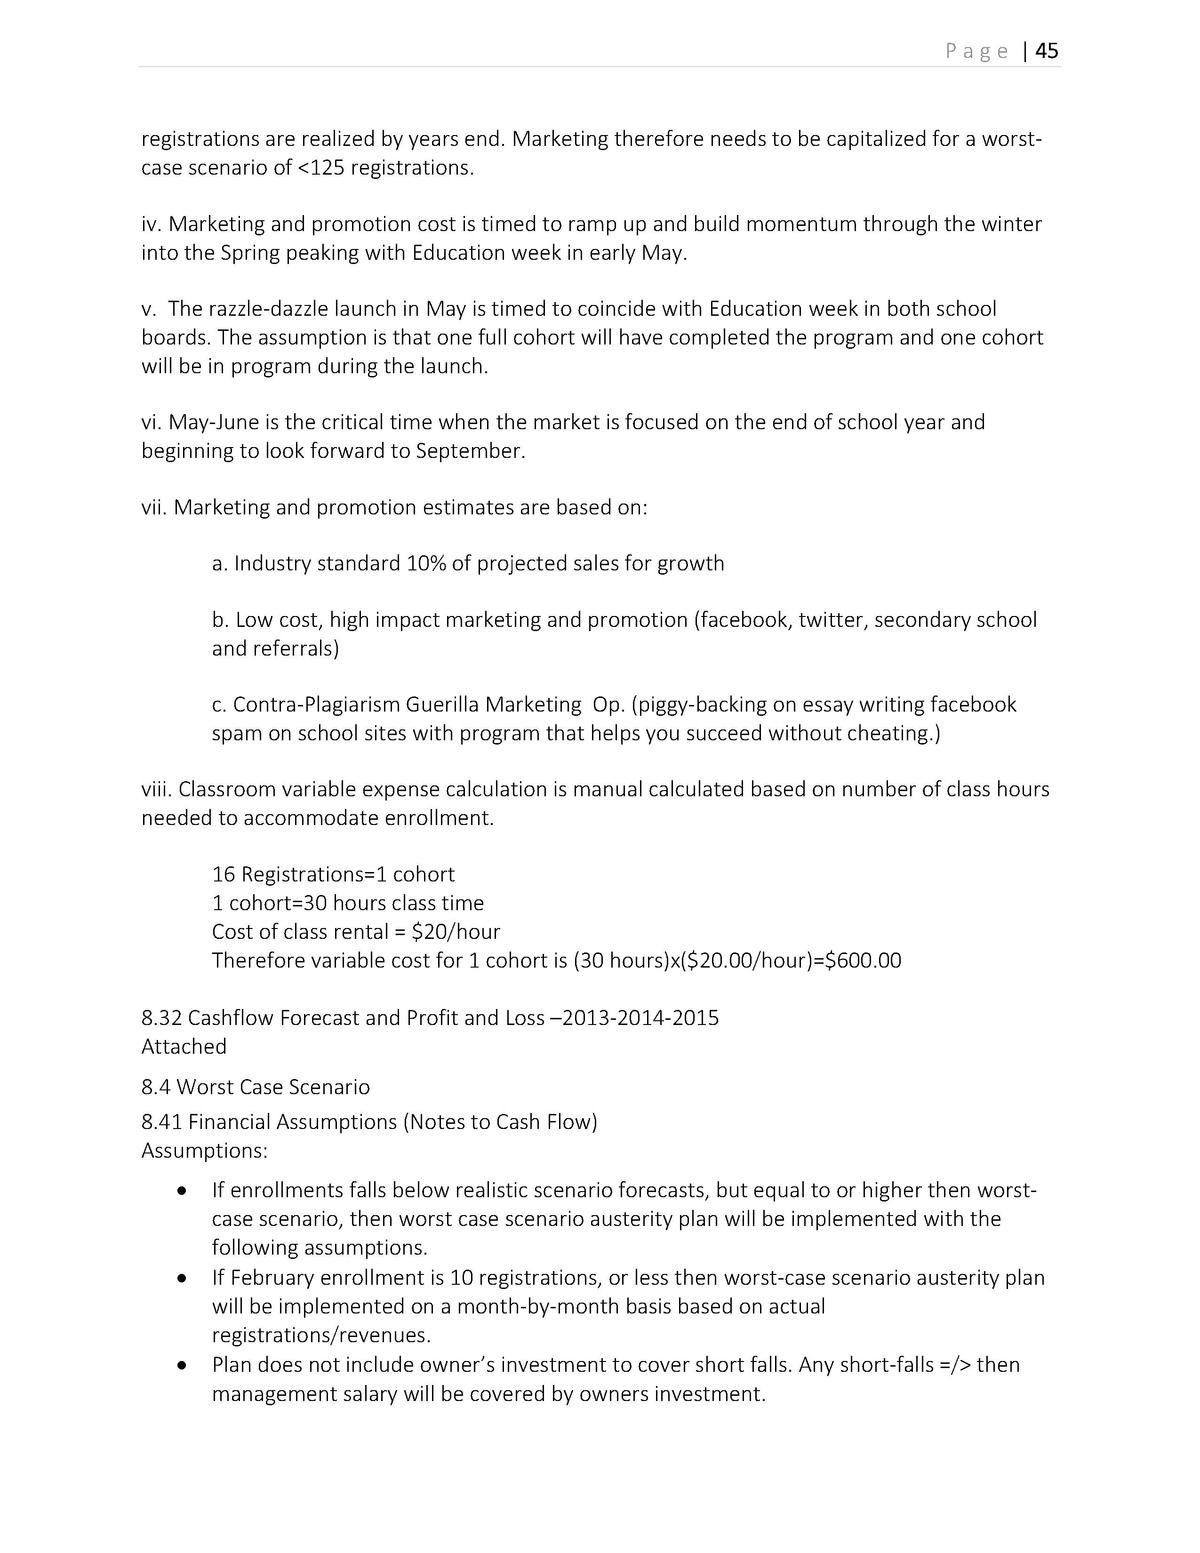 Simple thinking high living essay help